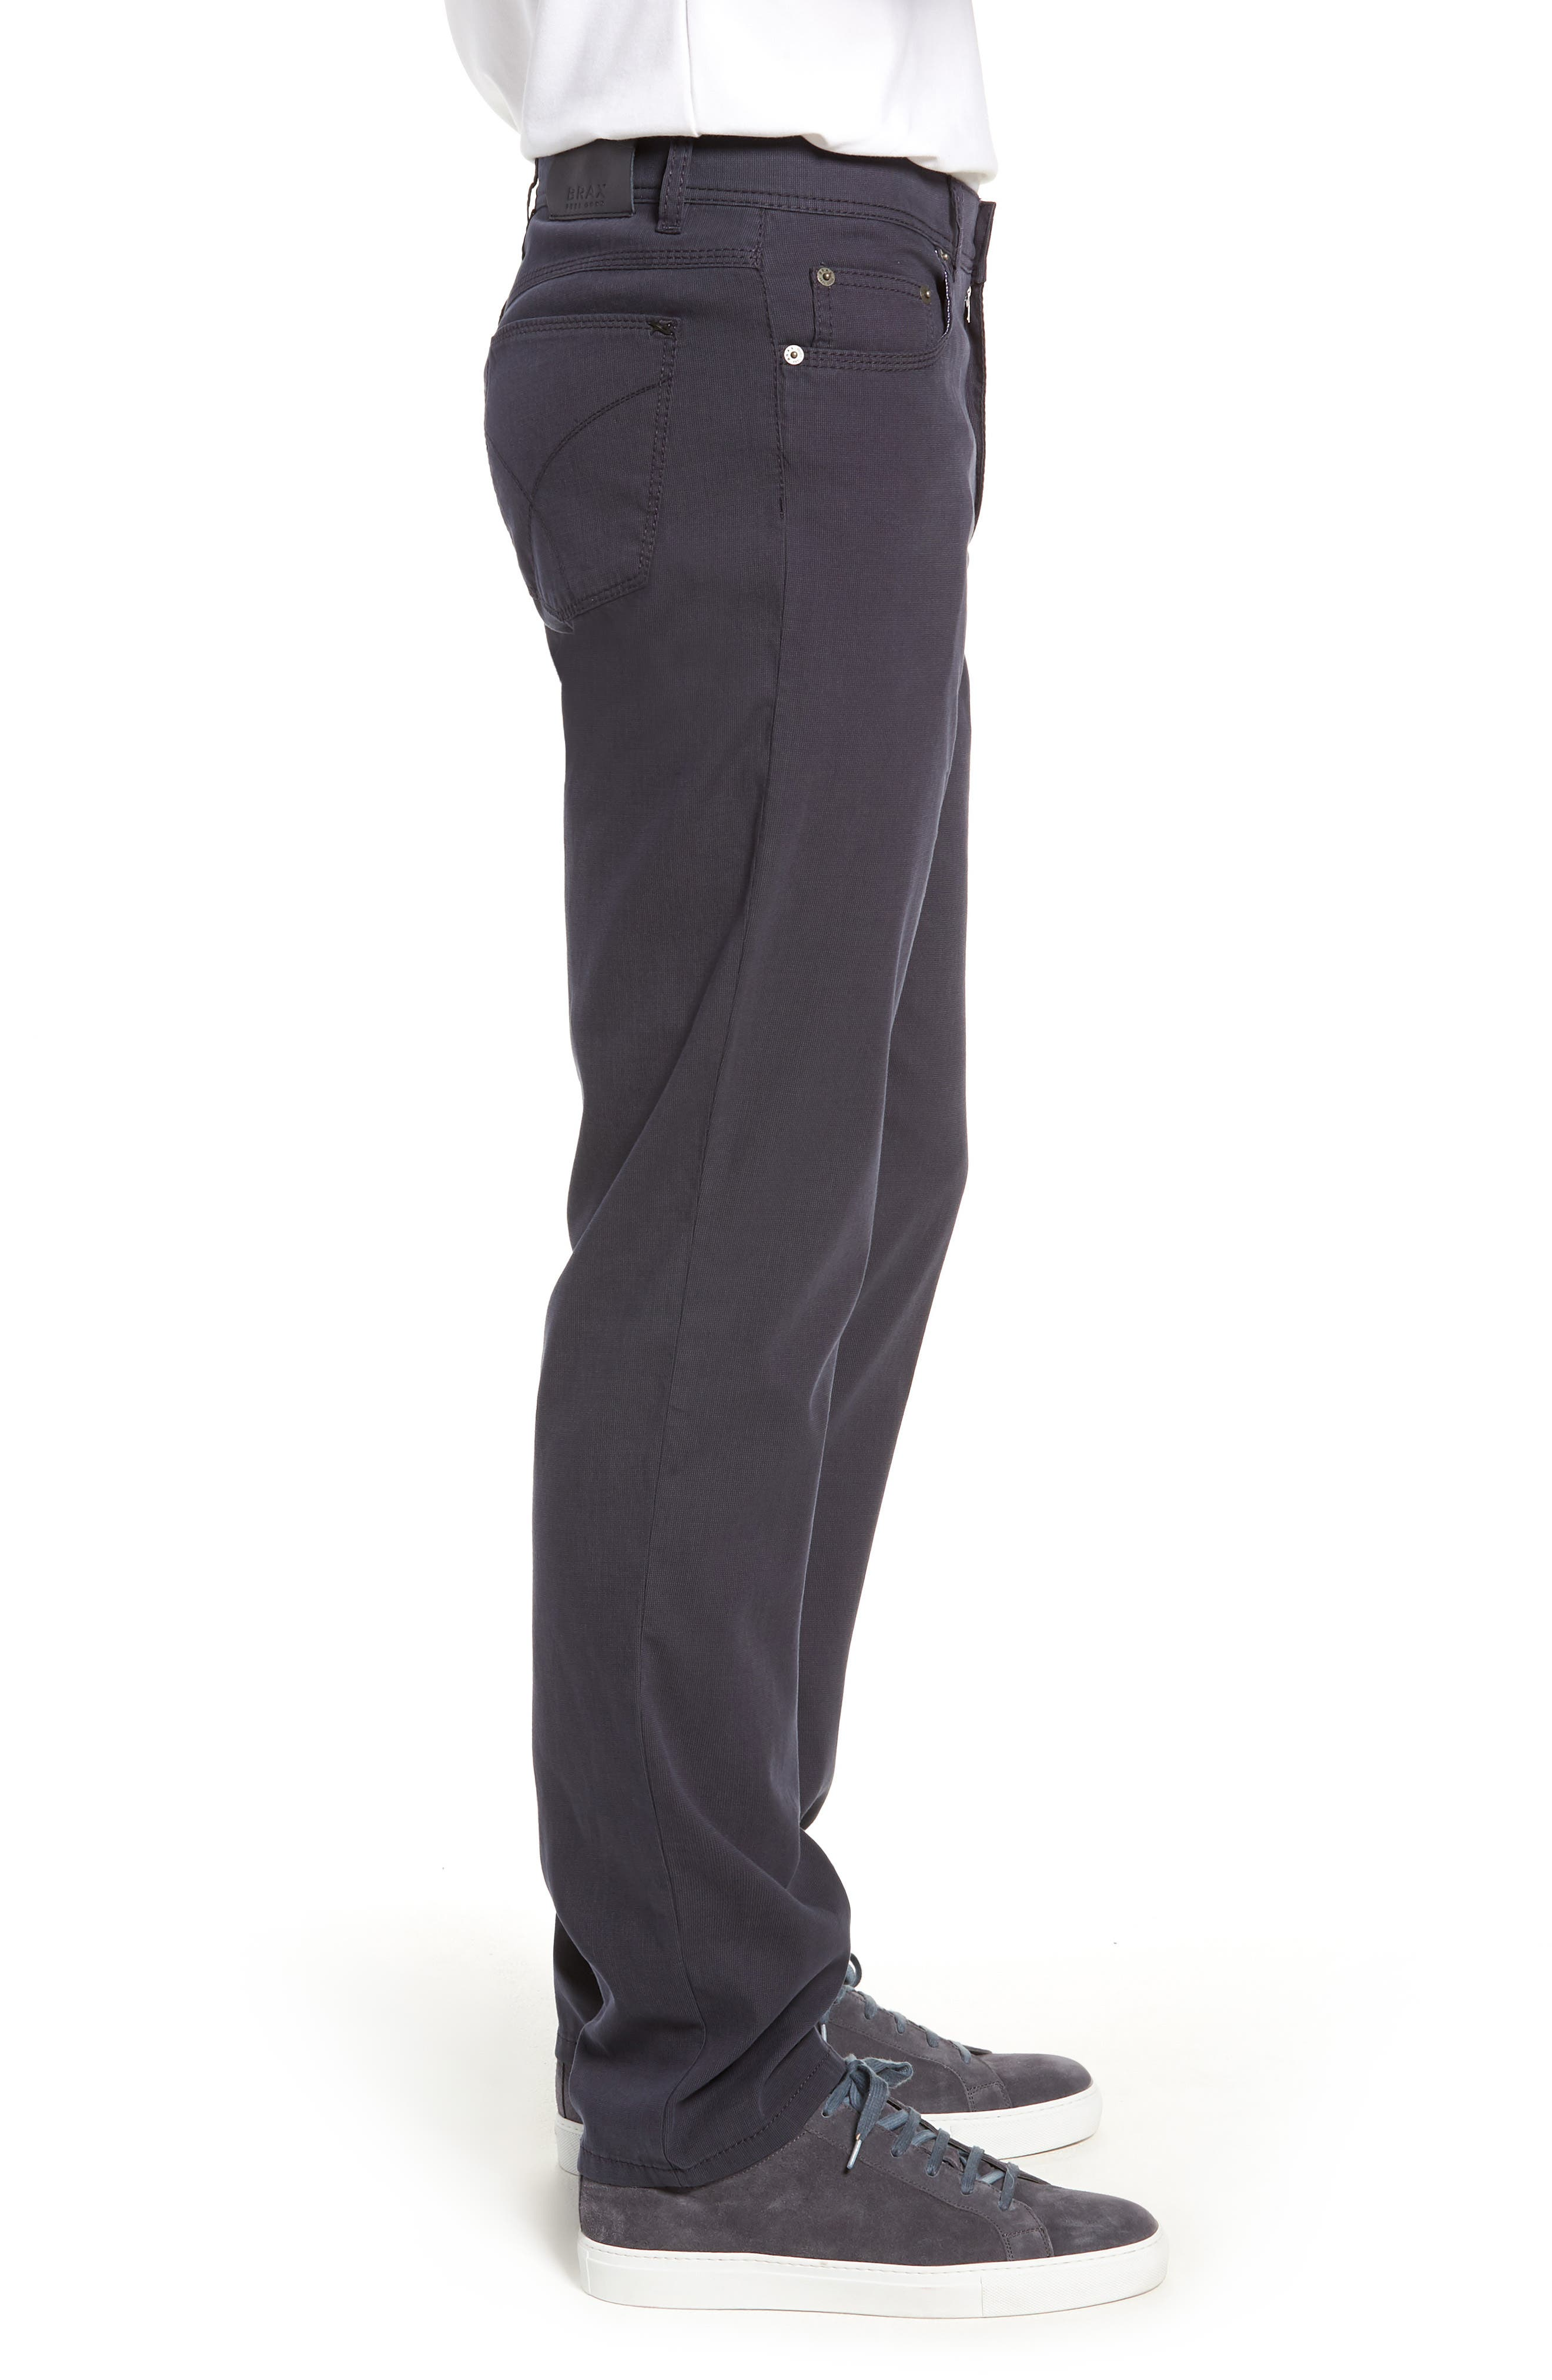 Sensation Stretch Trousers,                             Alternate thumbnail 3, color,                             GRAPHIT GREY